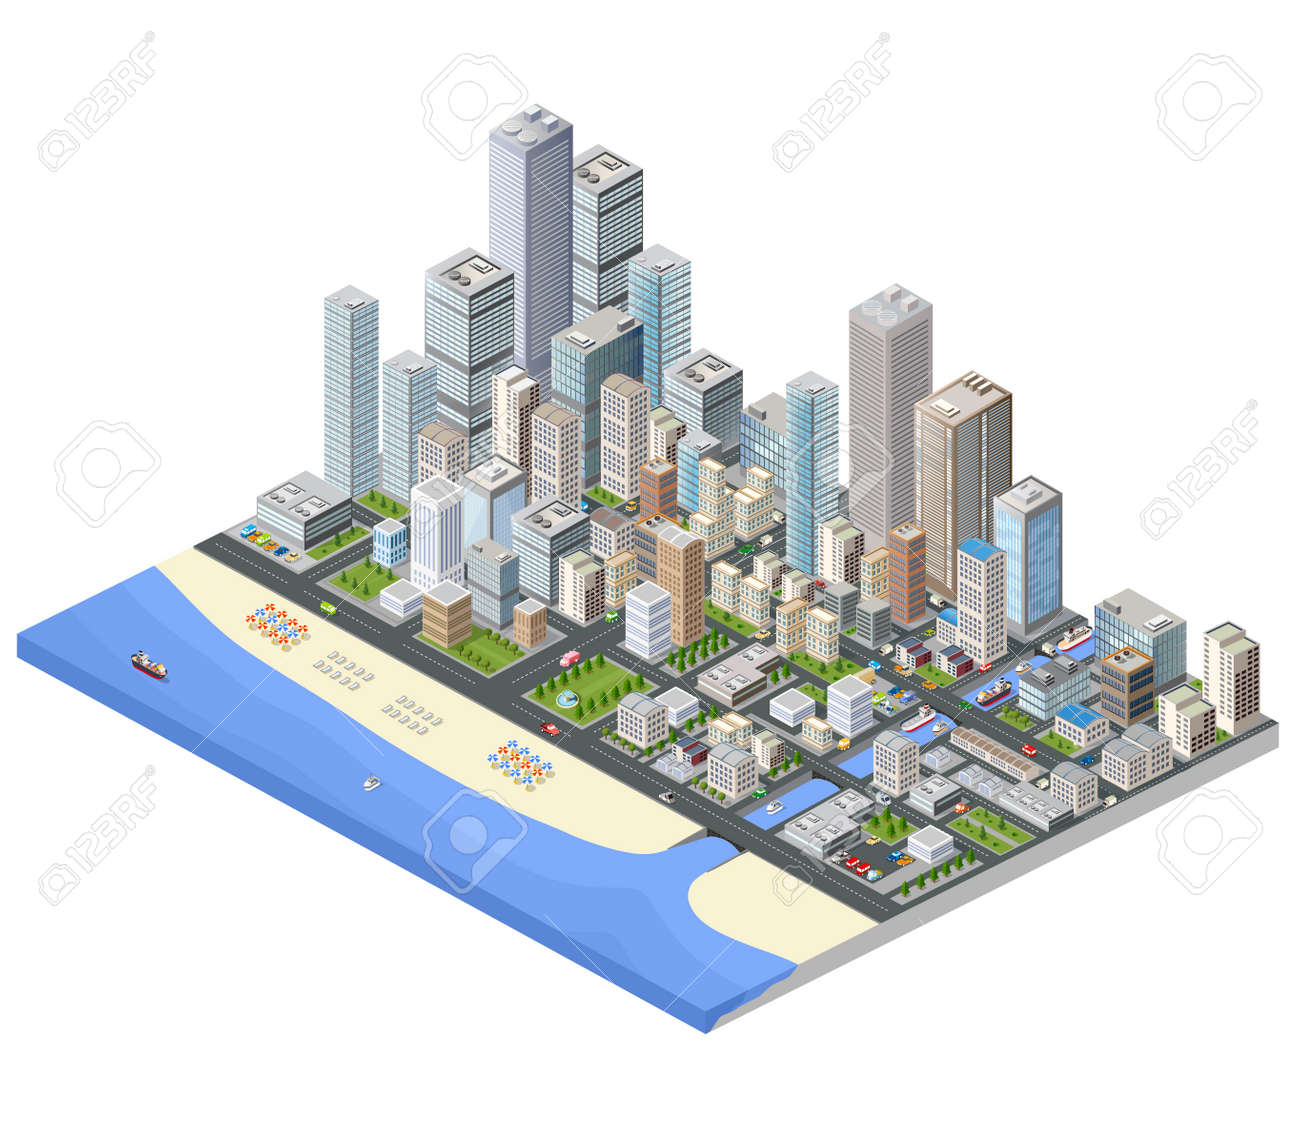 Isometric city. Skyscrapers, houses and streets in the metropolis isometric view. - 59888279